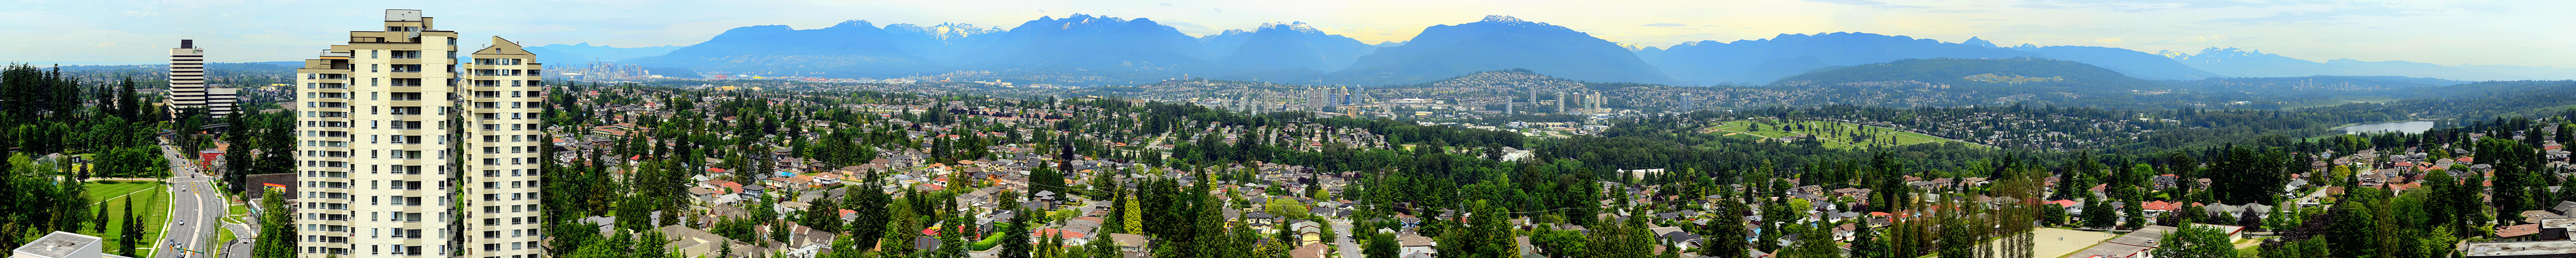 Vancouver panorama from my balcony in Burnaby, BC